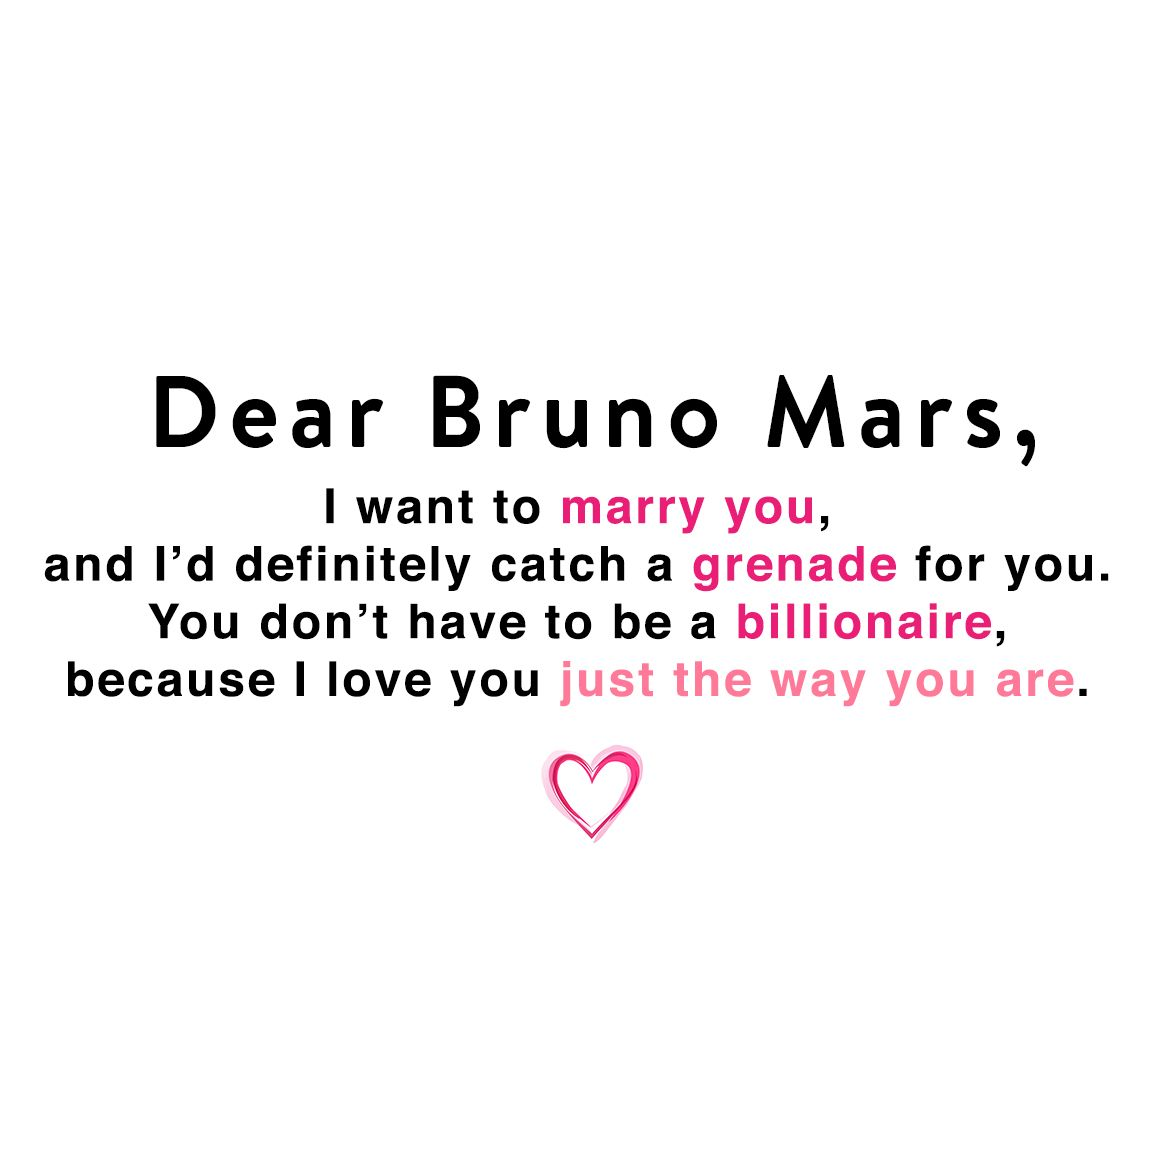 Dear Bruno Mars, you're amazing just the way you are!